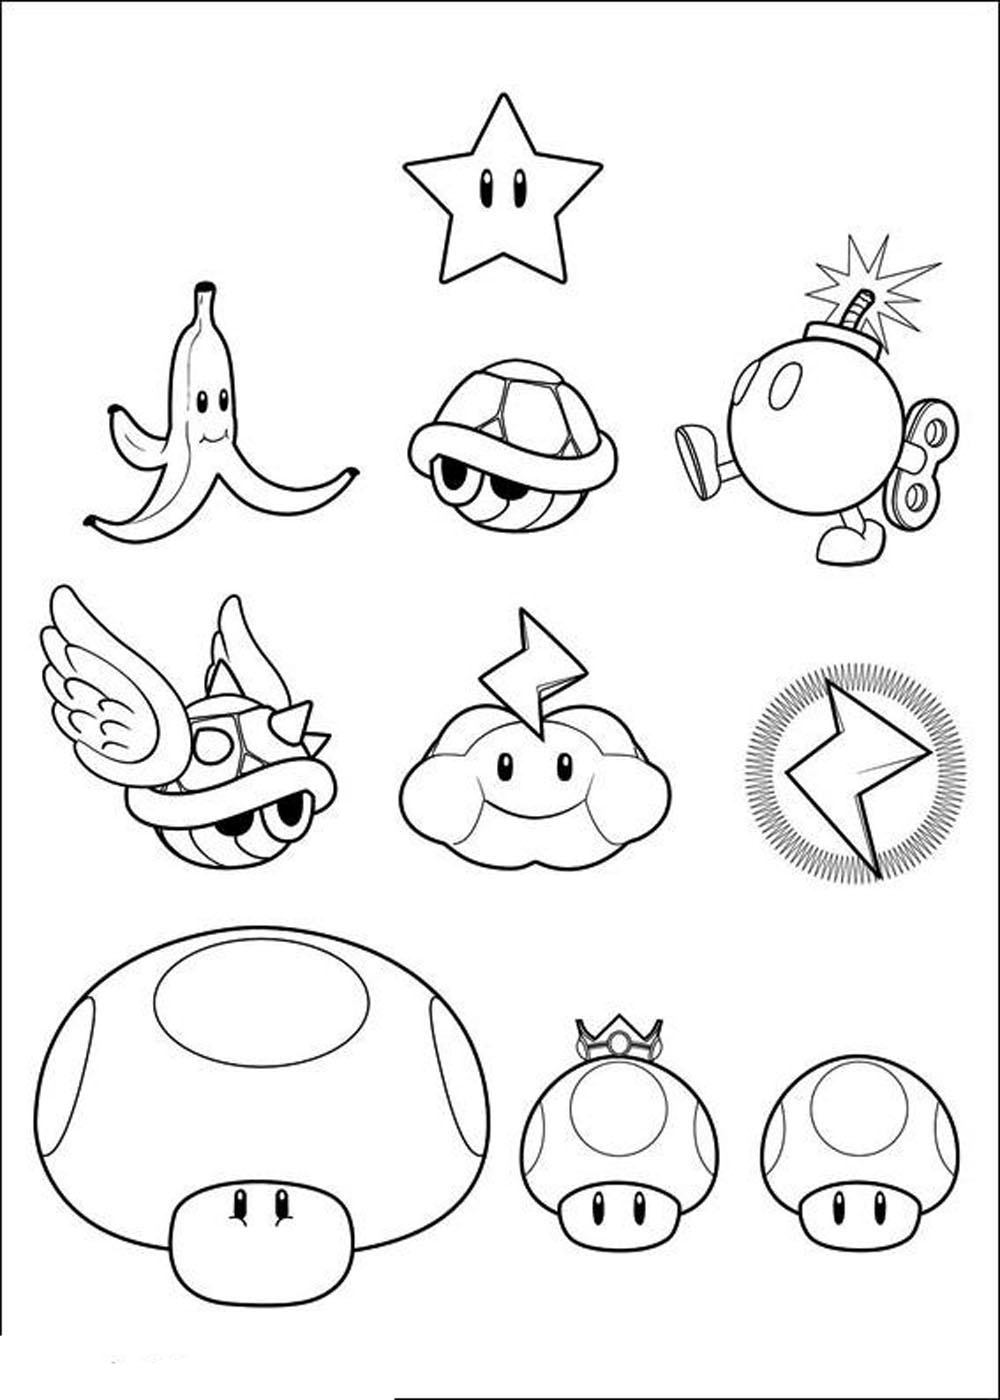 1000x1400 Super Mario Bros Printable Coloring Pages